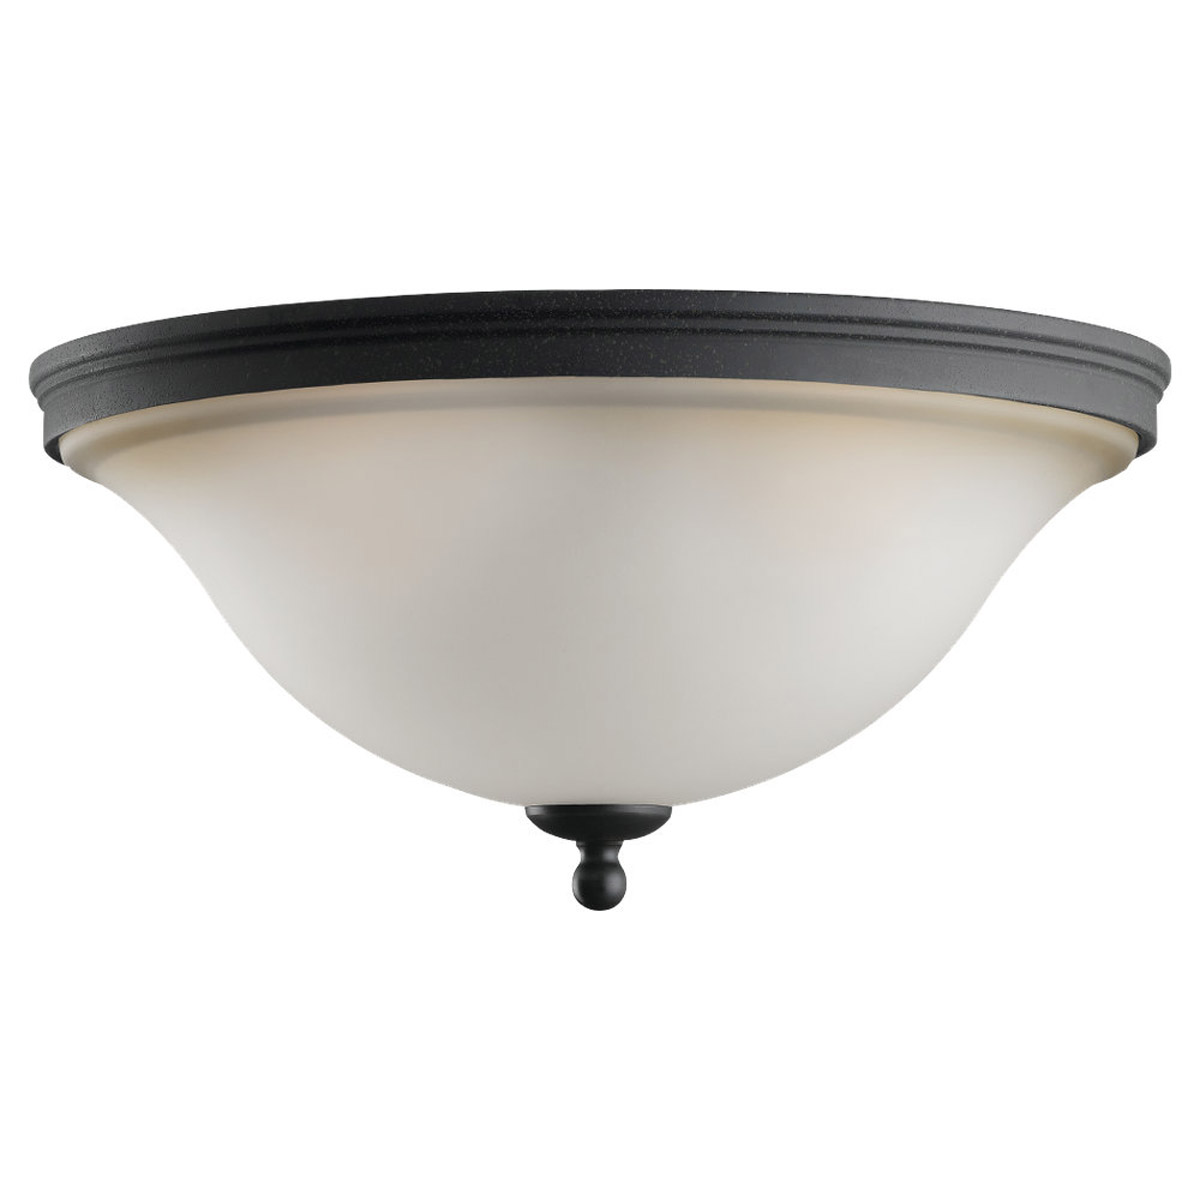 Sea Gull Lighting Gladstone 2 Light Ceiling Fixture in Forged Iron 75850-185